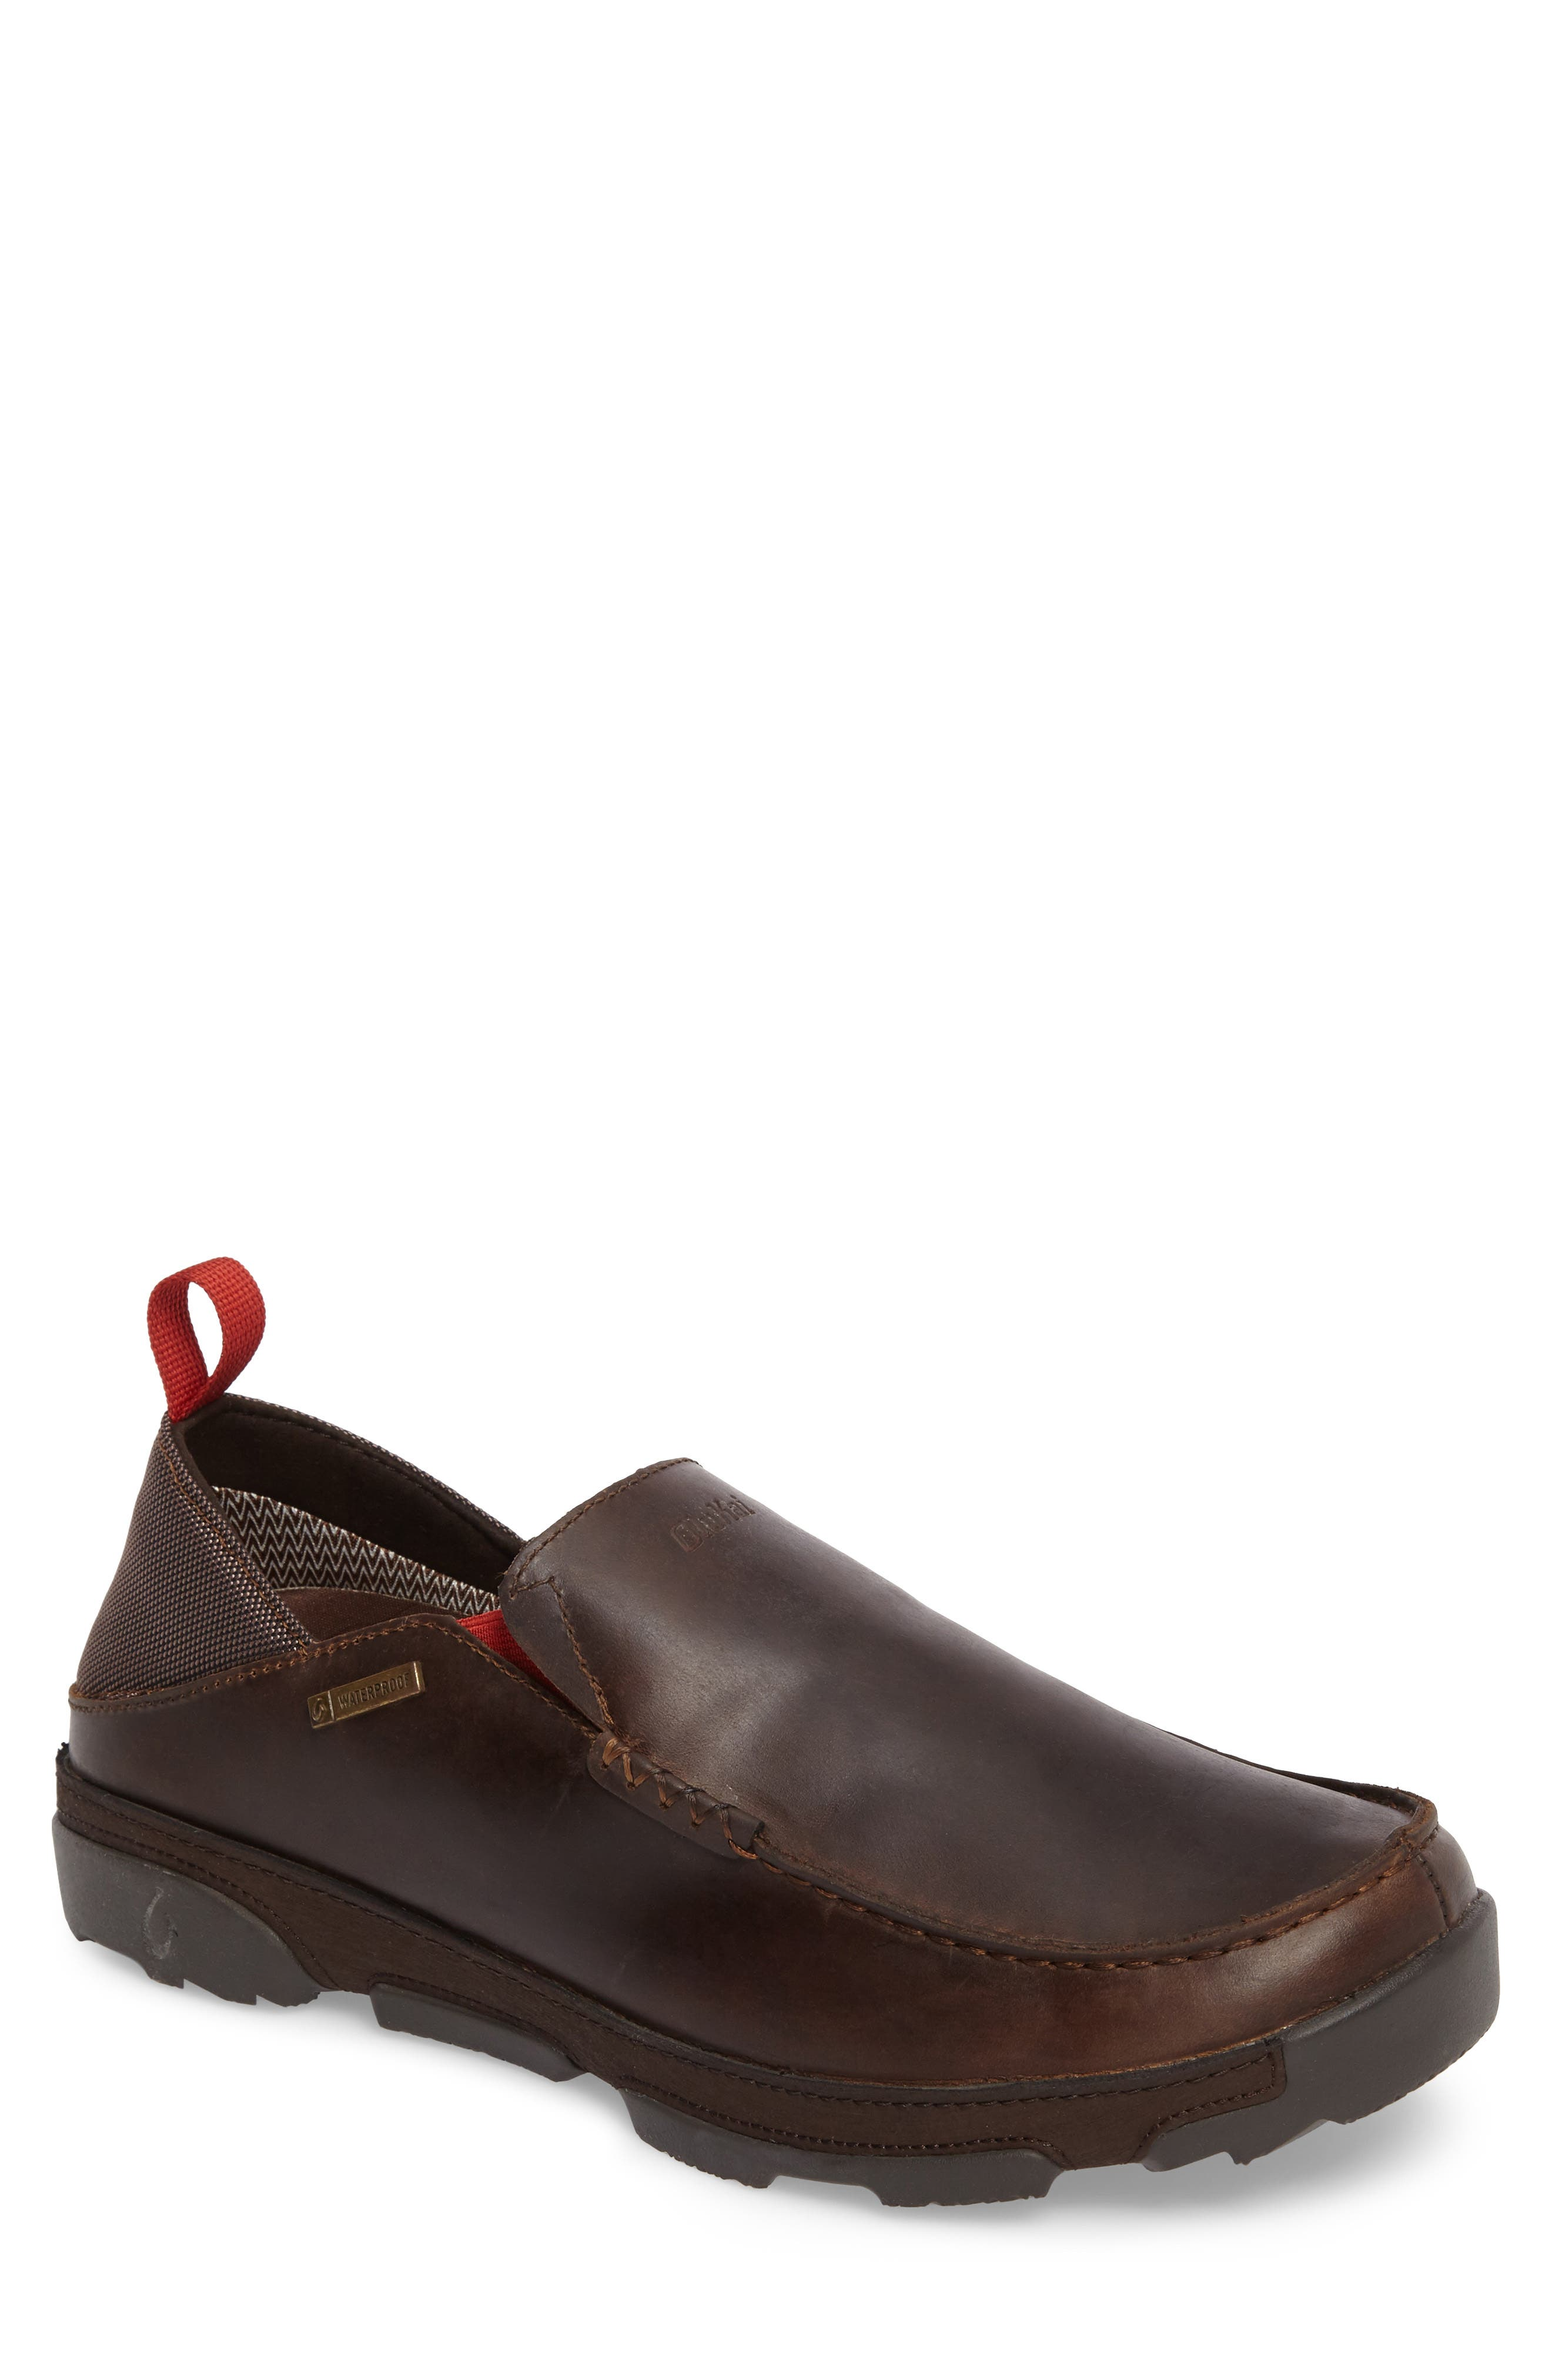 Na'I Collapsible Waterproof Slip-On,                         Main,                         color, CAROB/ DARK WOOD LEATHER